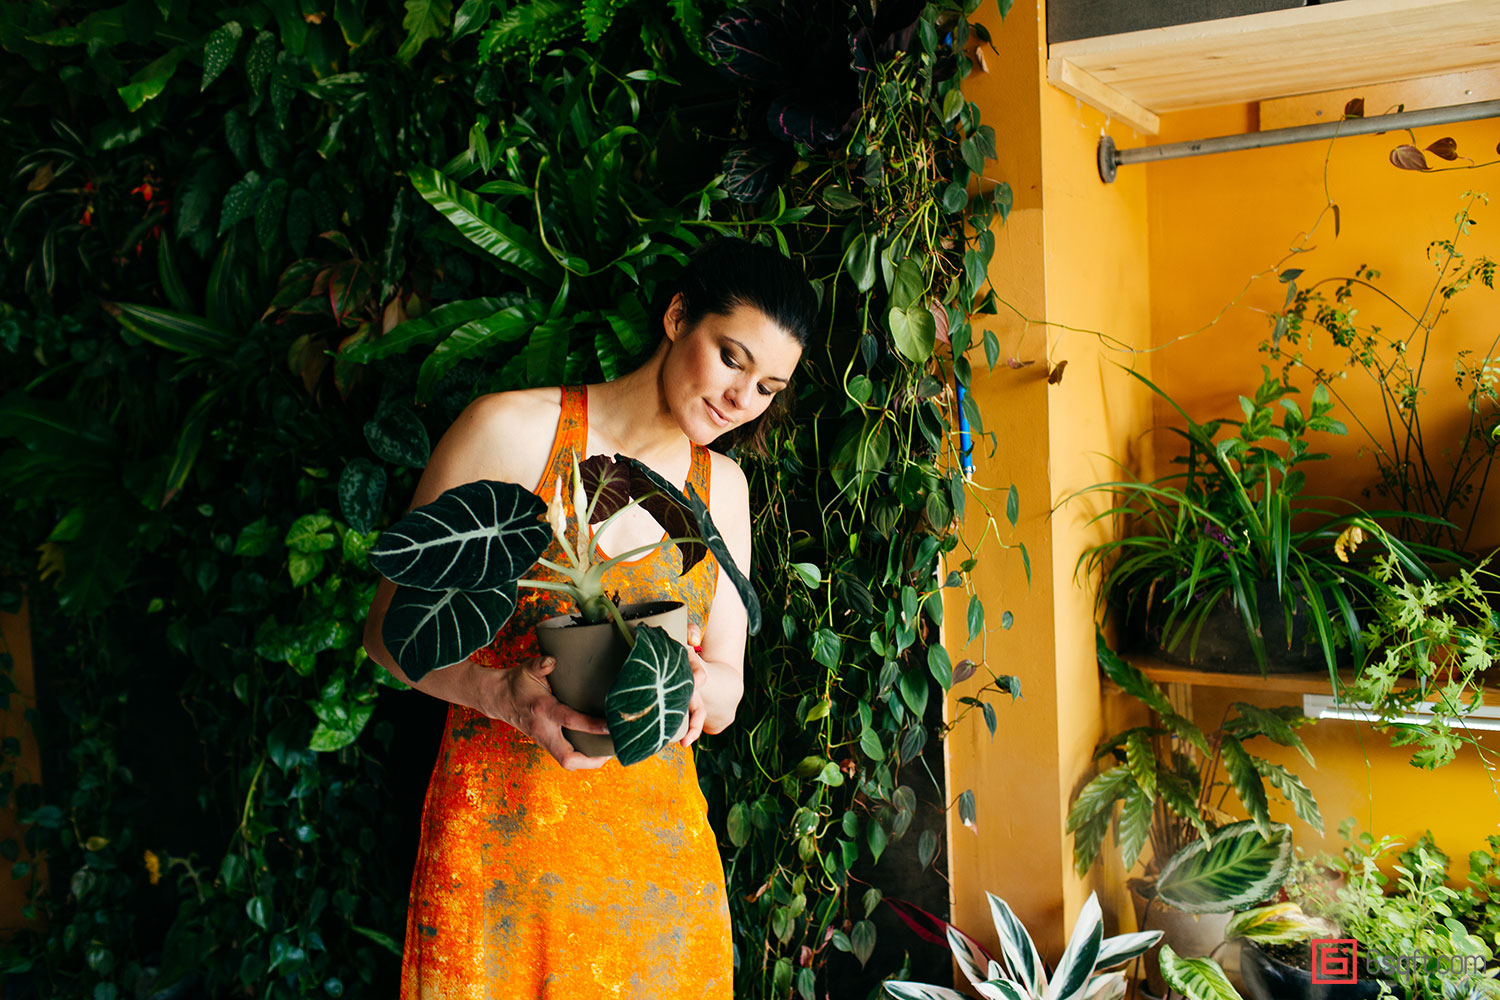 Model Summer Rayne Oakes, plant-filled apartments, Model Summer Rayne Oakes apartment, eco Model, Summer Rayne Oakes, model apartments, plant inspiration, how to grow plants indoors, best plants for apartments, williamsburg lofts